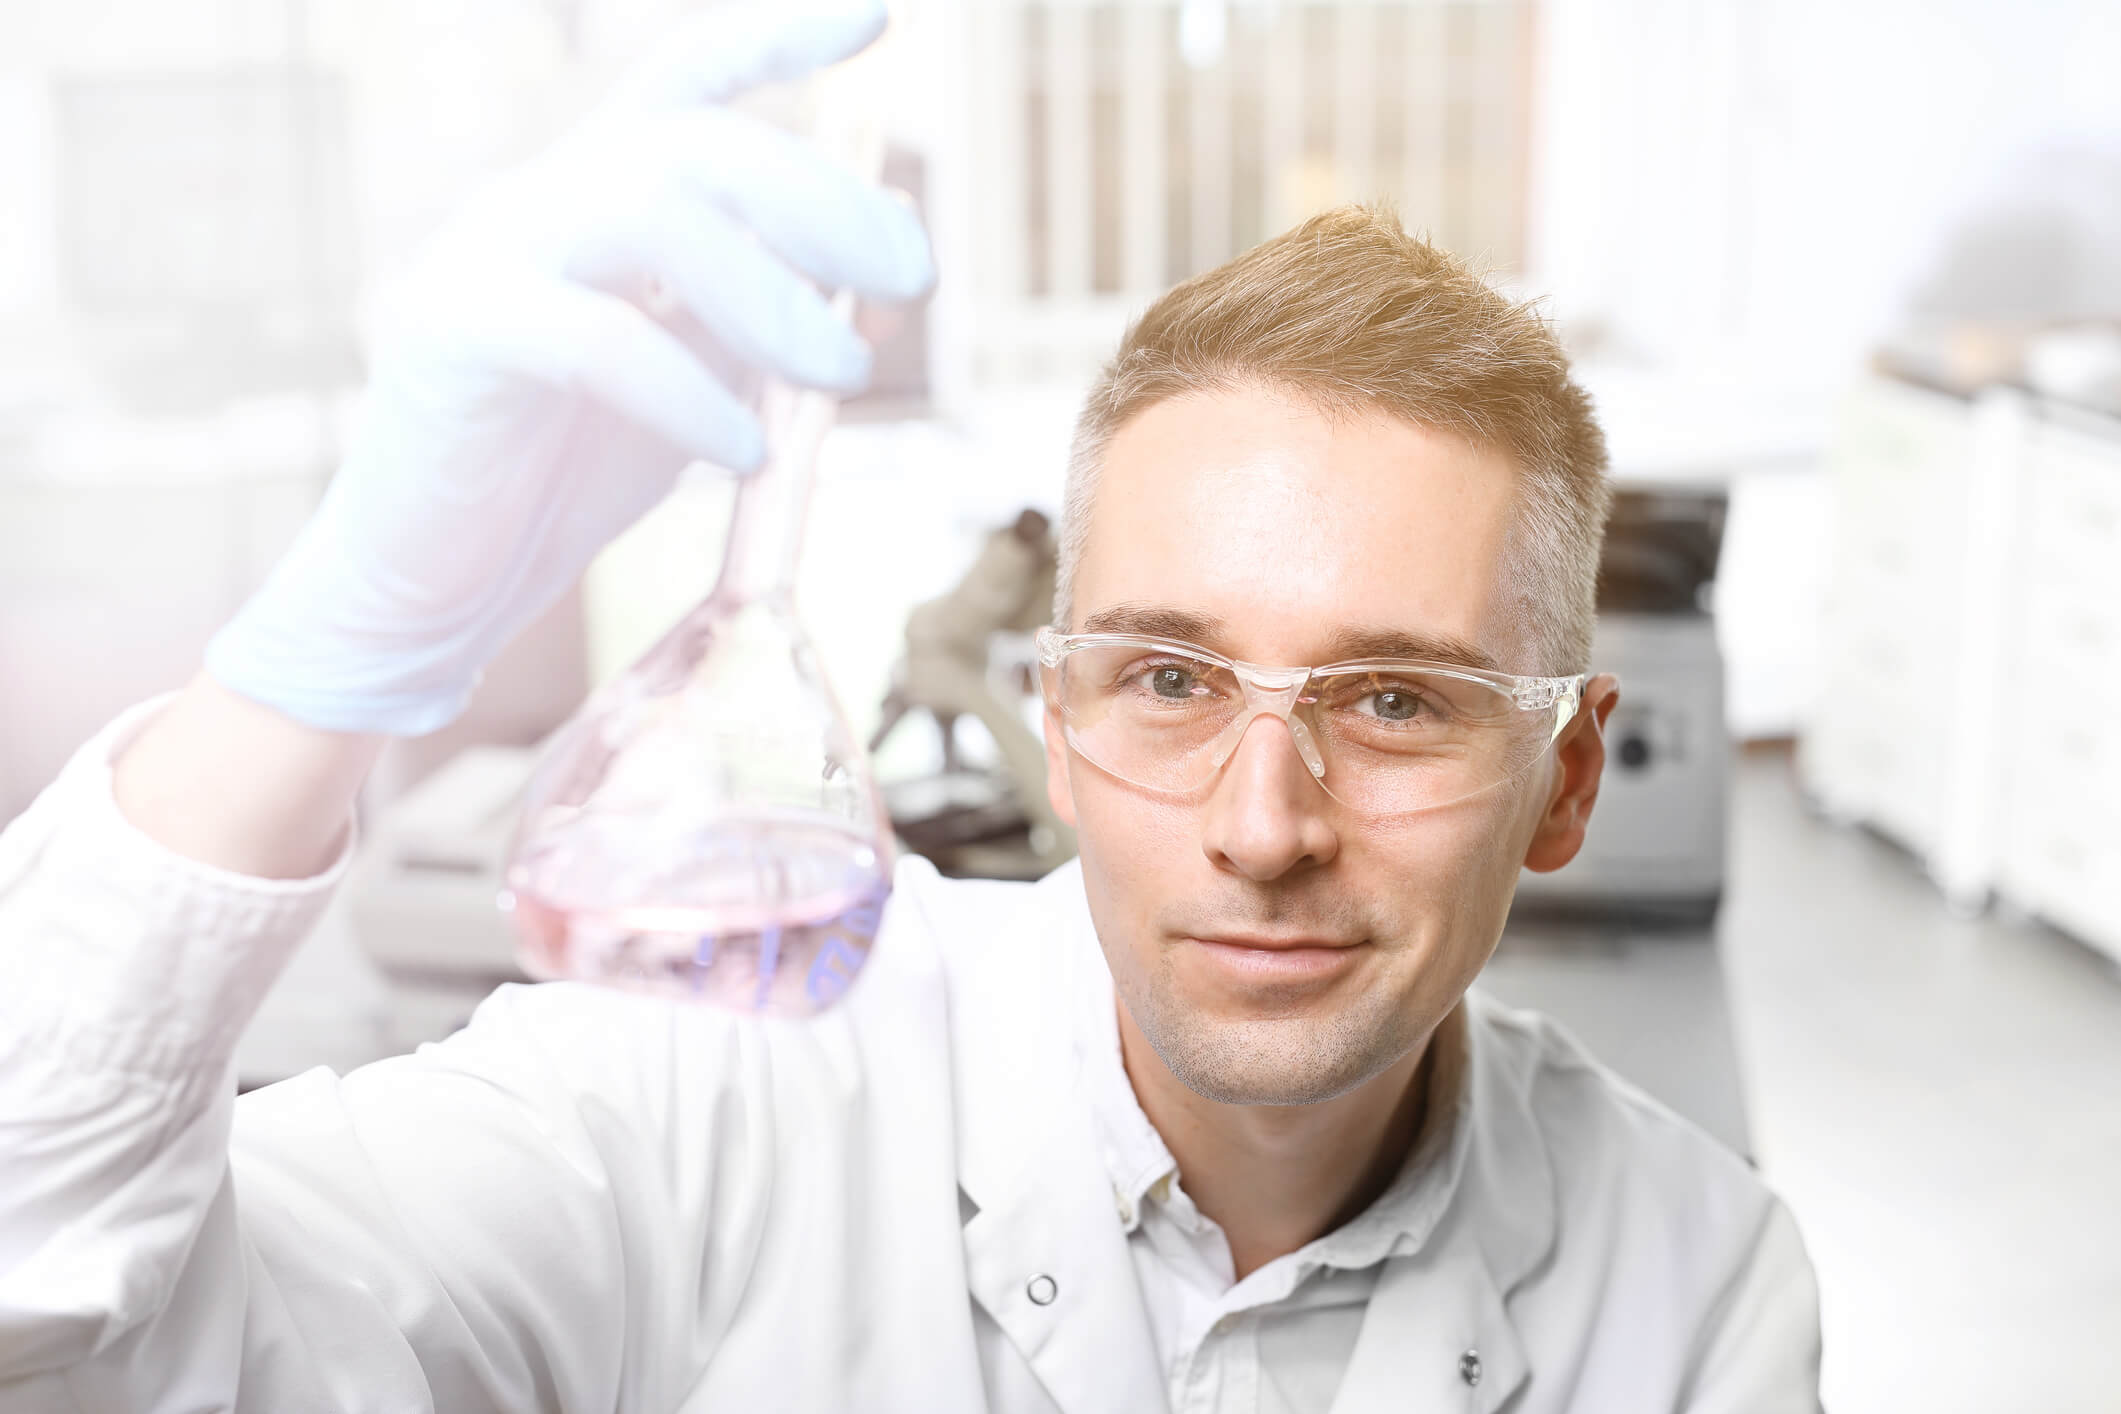 Lab man holding test tube with solution